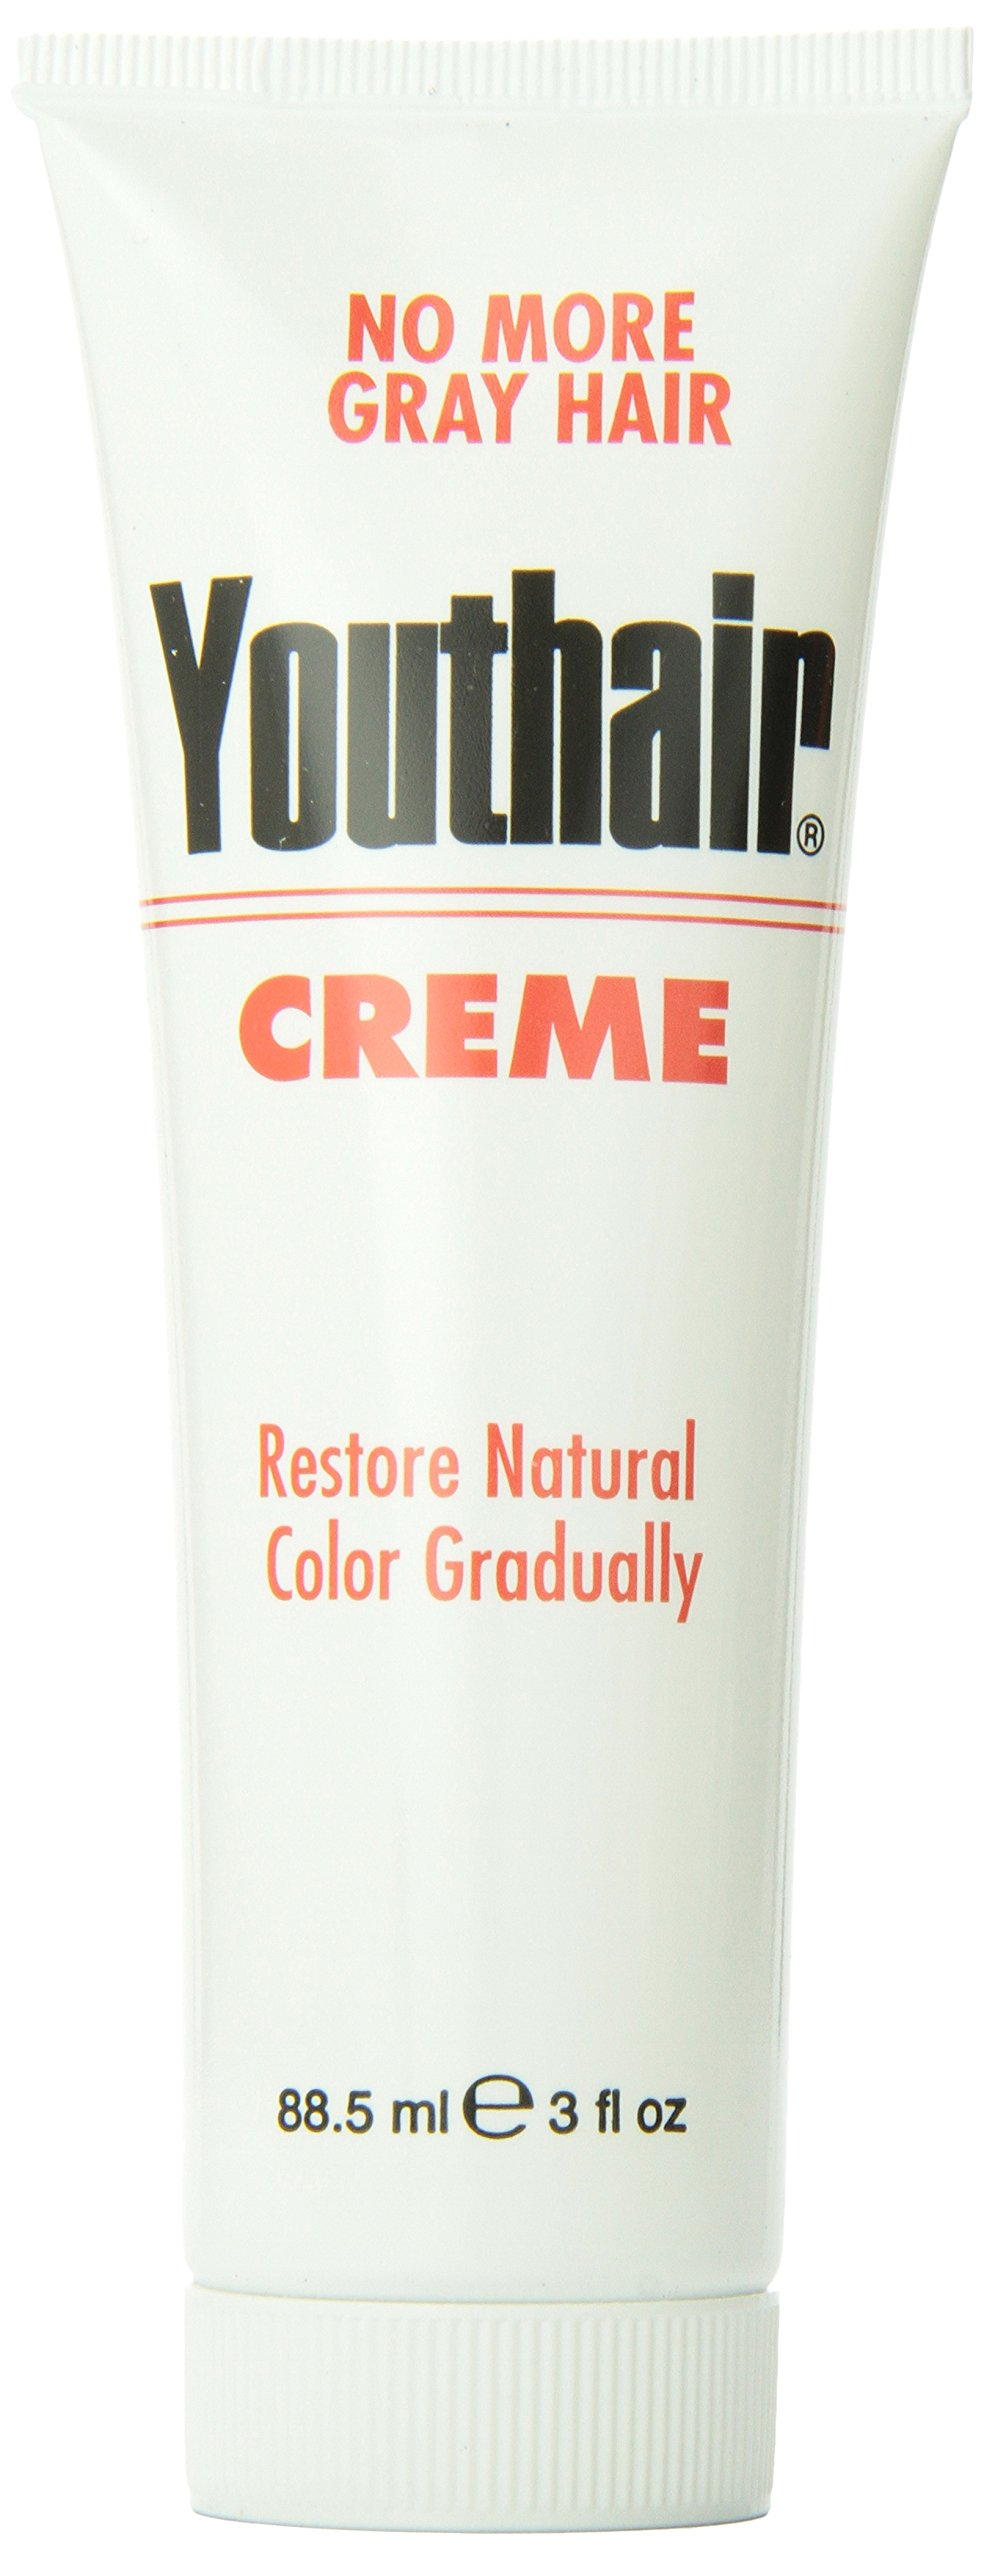 Youthair Creme Tube, 3-Ounce(Pack of 3)